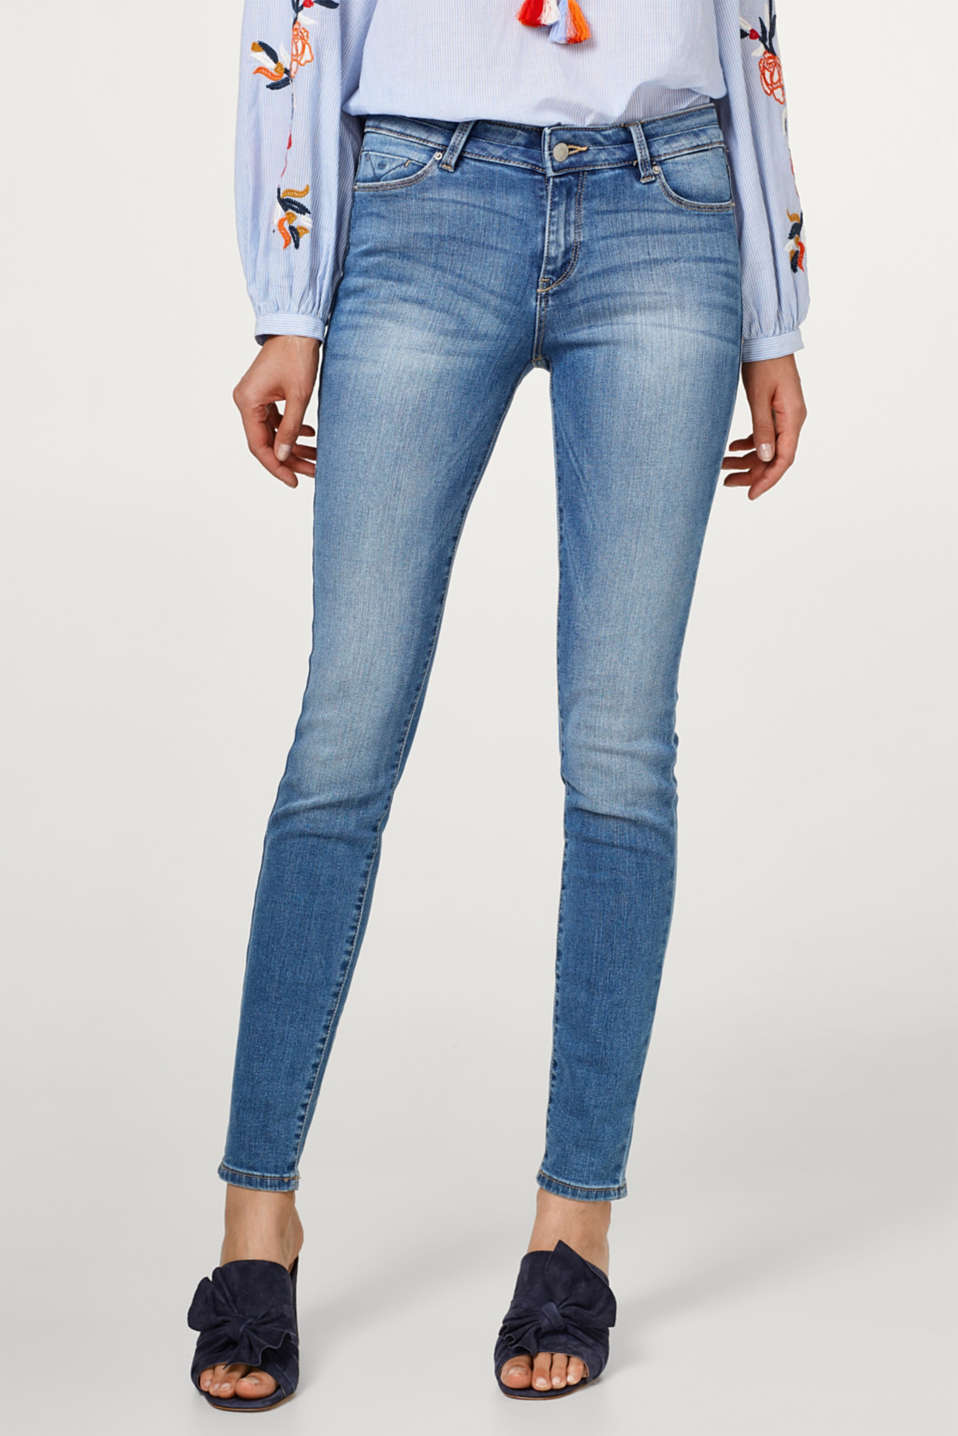 Esprit - Smalle stretchjeans i basic-look